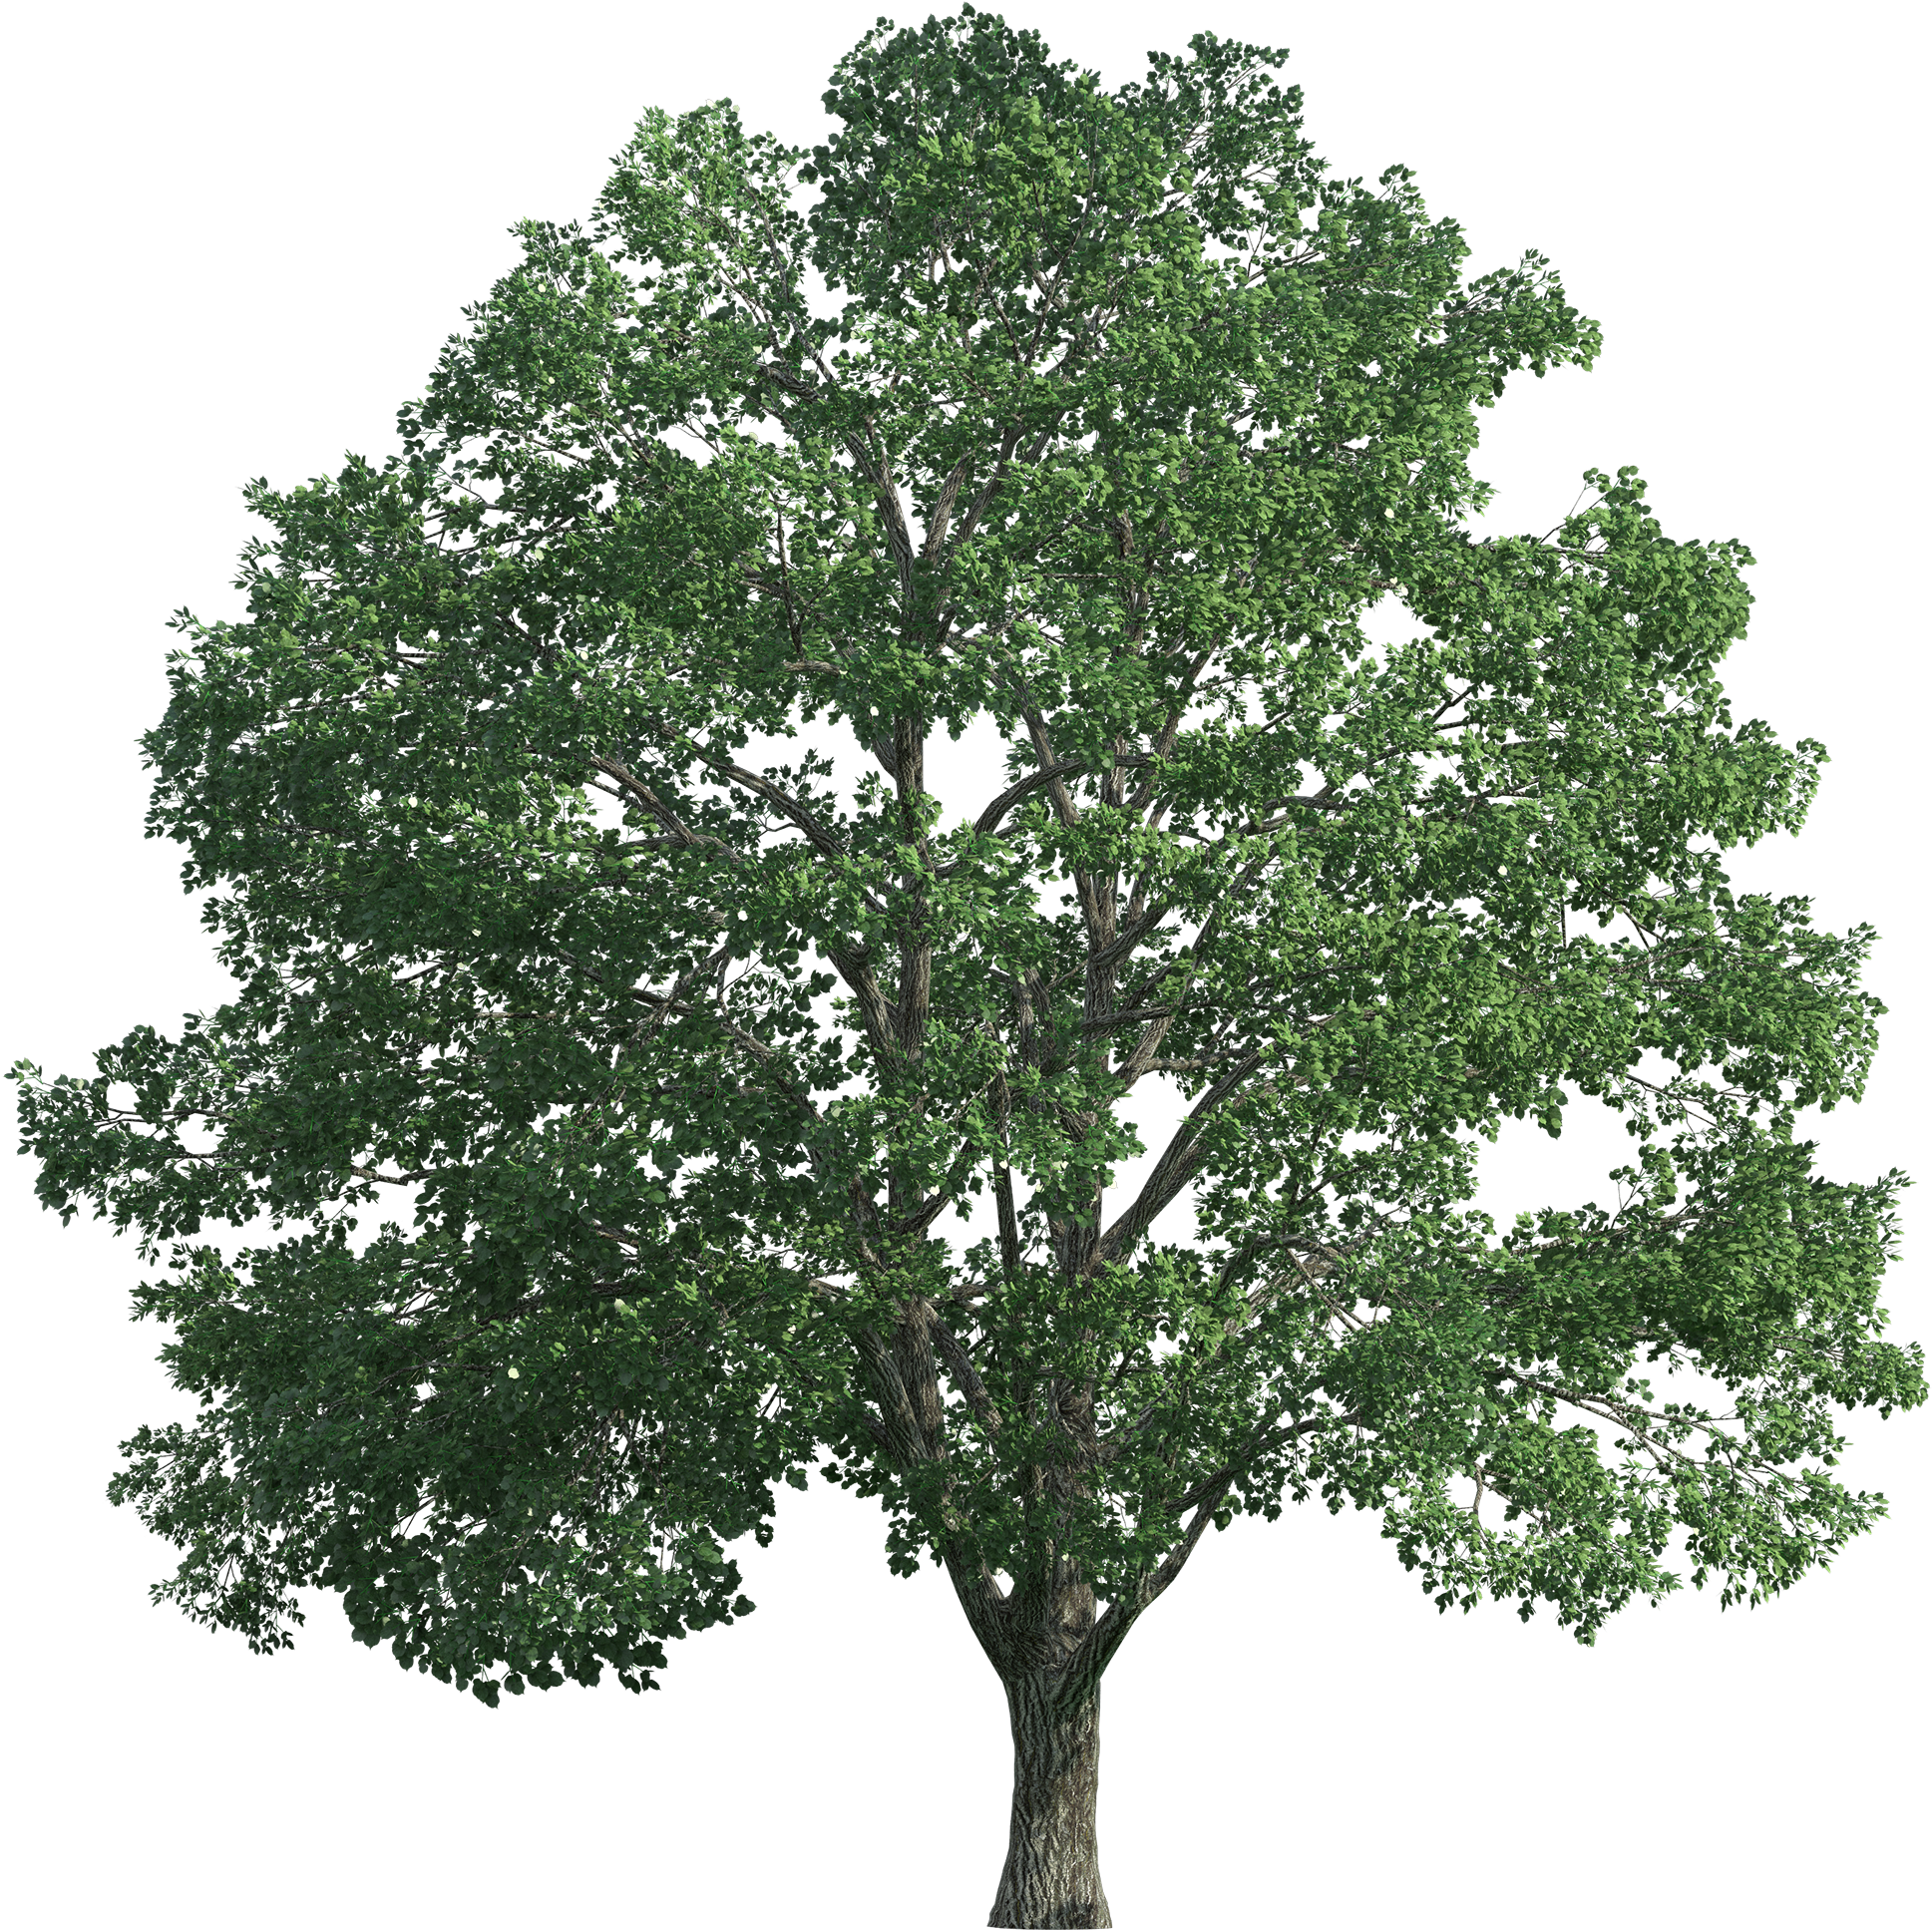 Tree Realistic Png Clip Art Transparent Background Png Big Tree Transparent Cartoon Jing Fm Find & download free graphic resources for trees cartoon. transparent background png big tree